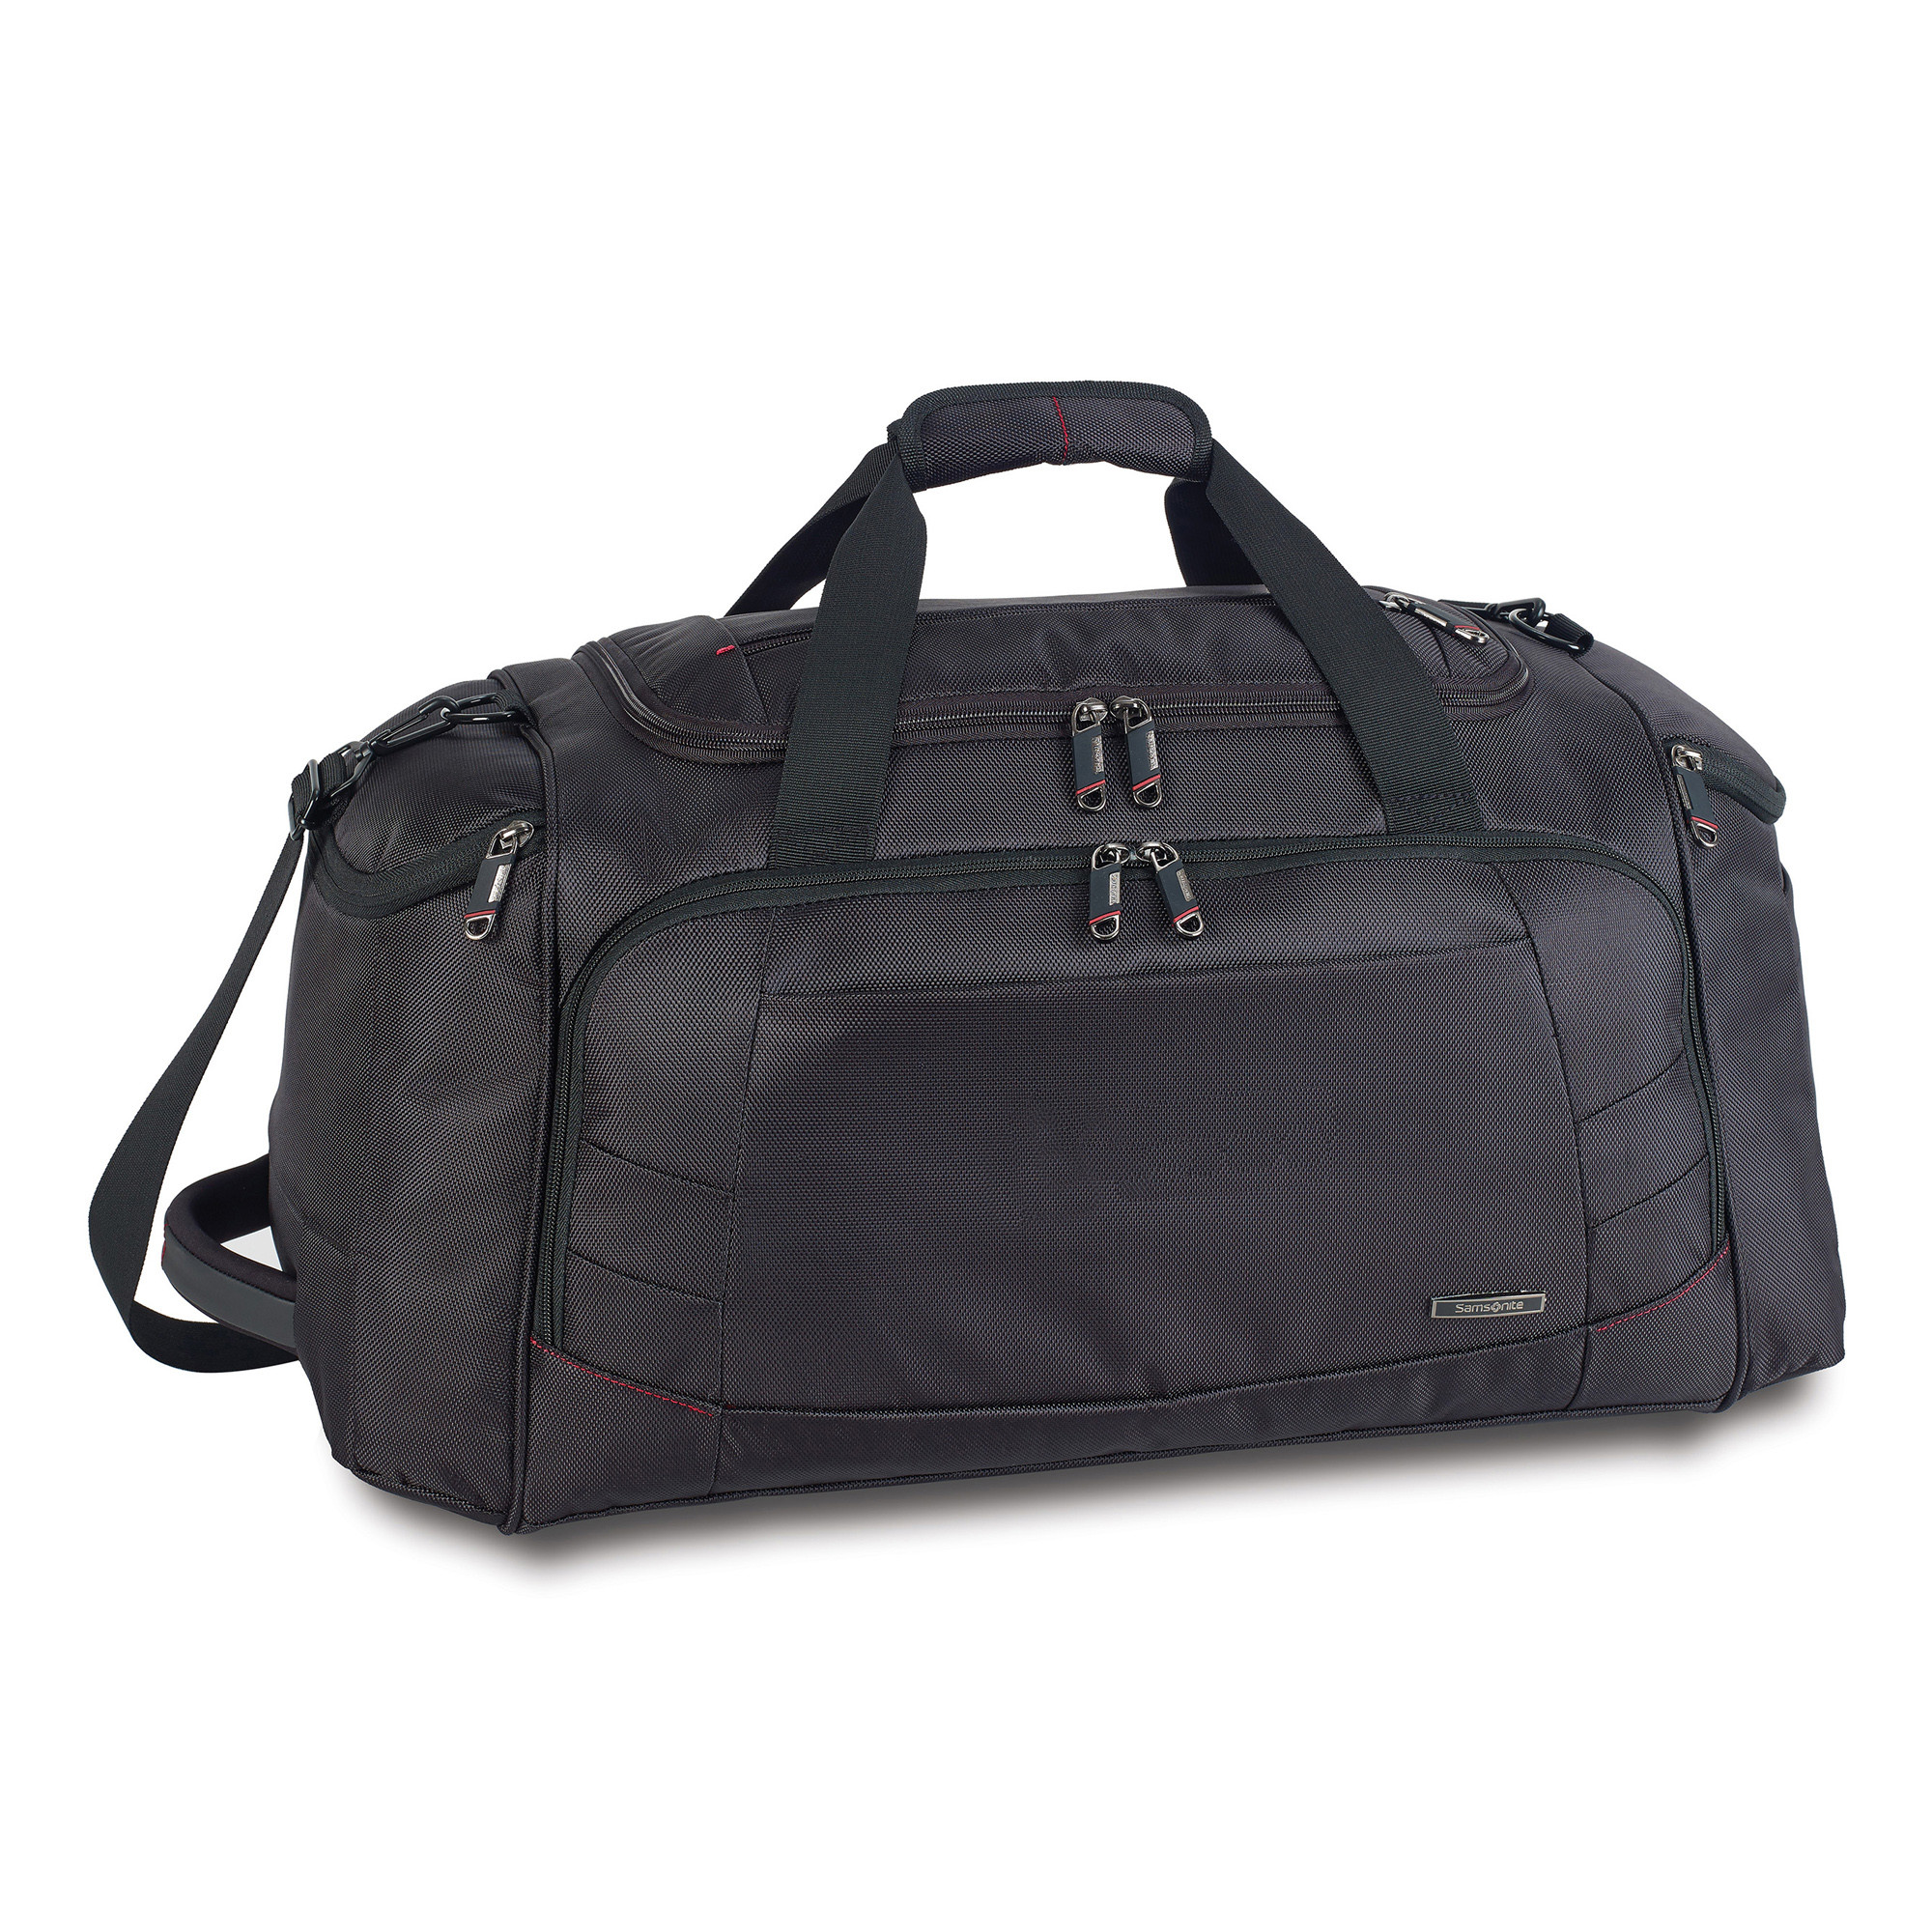 Samsonite 95038 - Xenon 2 Travel Bag